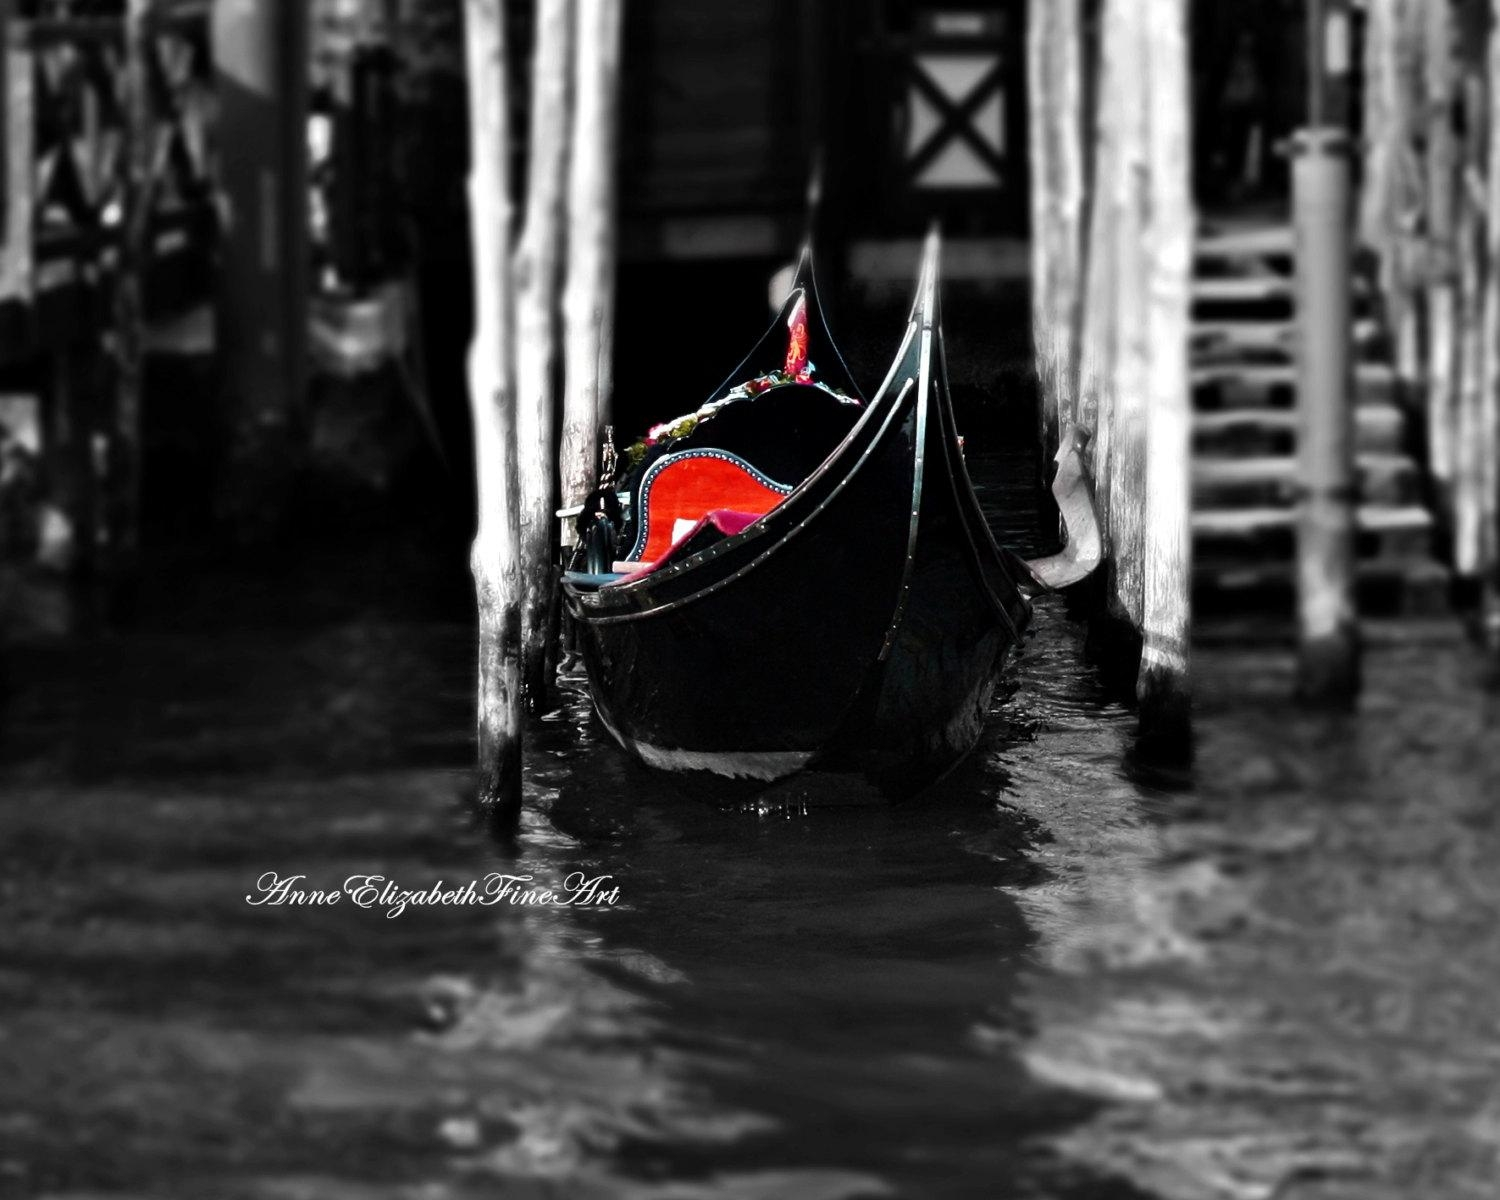 Italy Photographyitalian Theme Home Black White Red Intended For Black And White Italian Wall Art (Image 15 of 20)